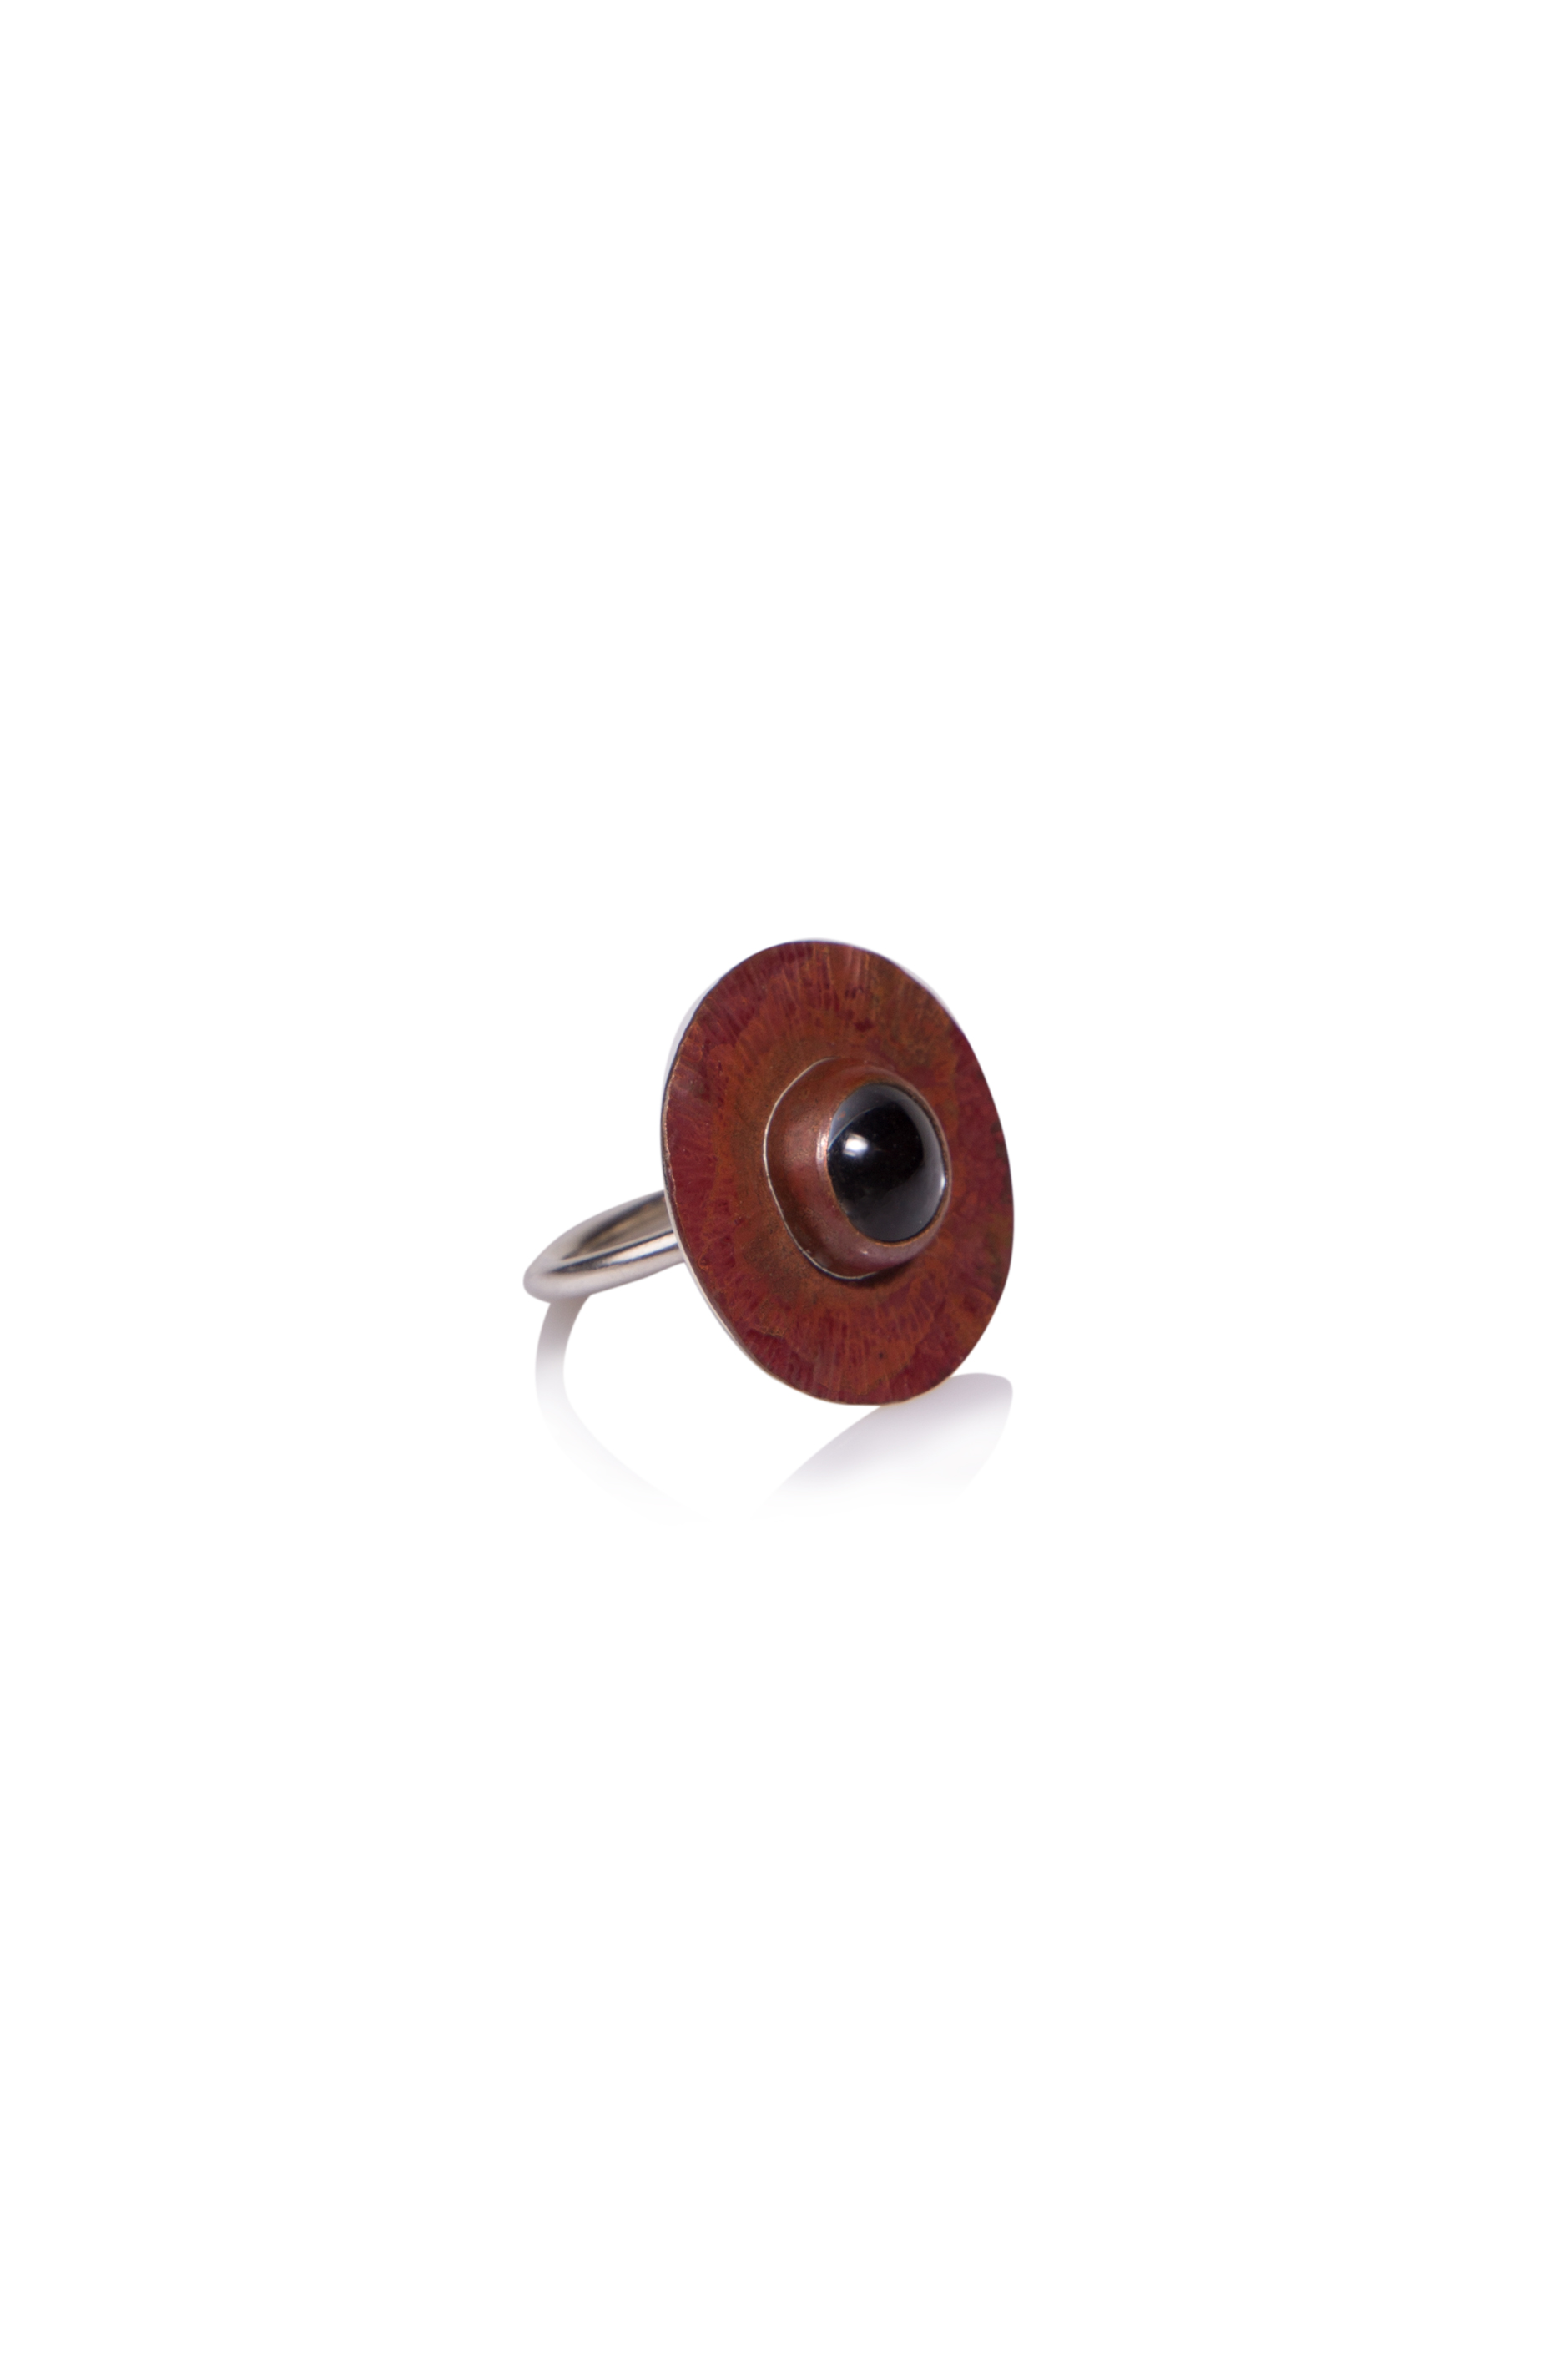 Copper 'Eye' Ring  Oxidised copper with glass stone setting riveted onto sterling silver